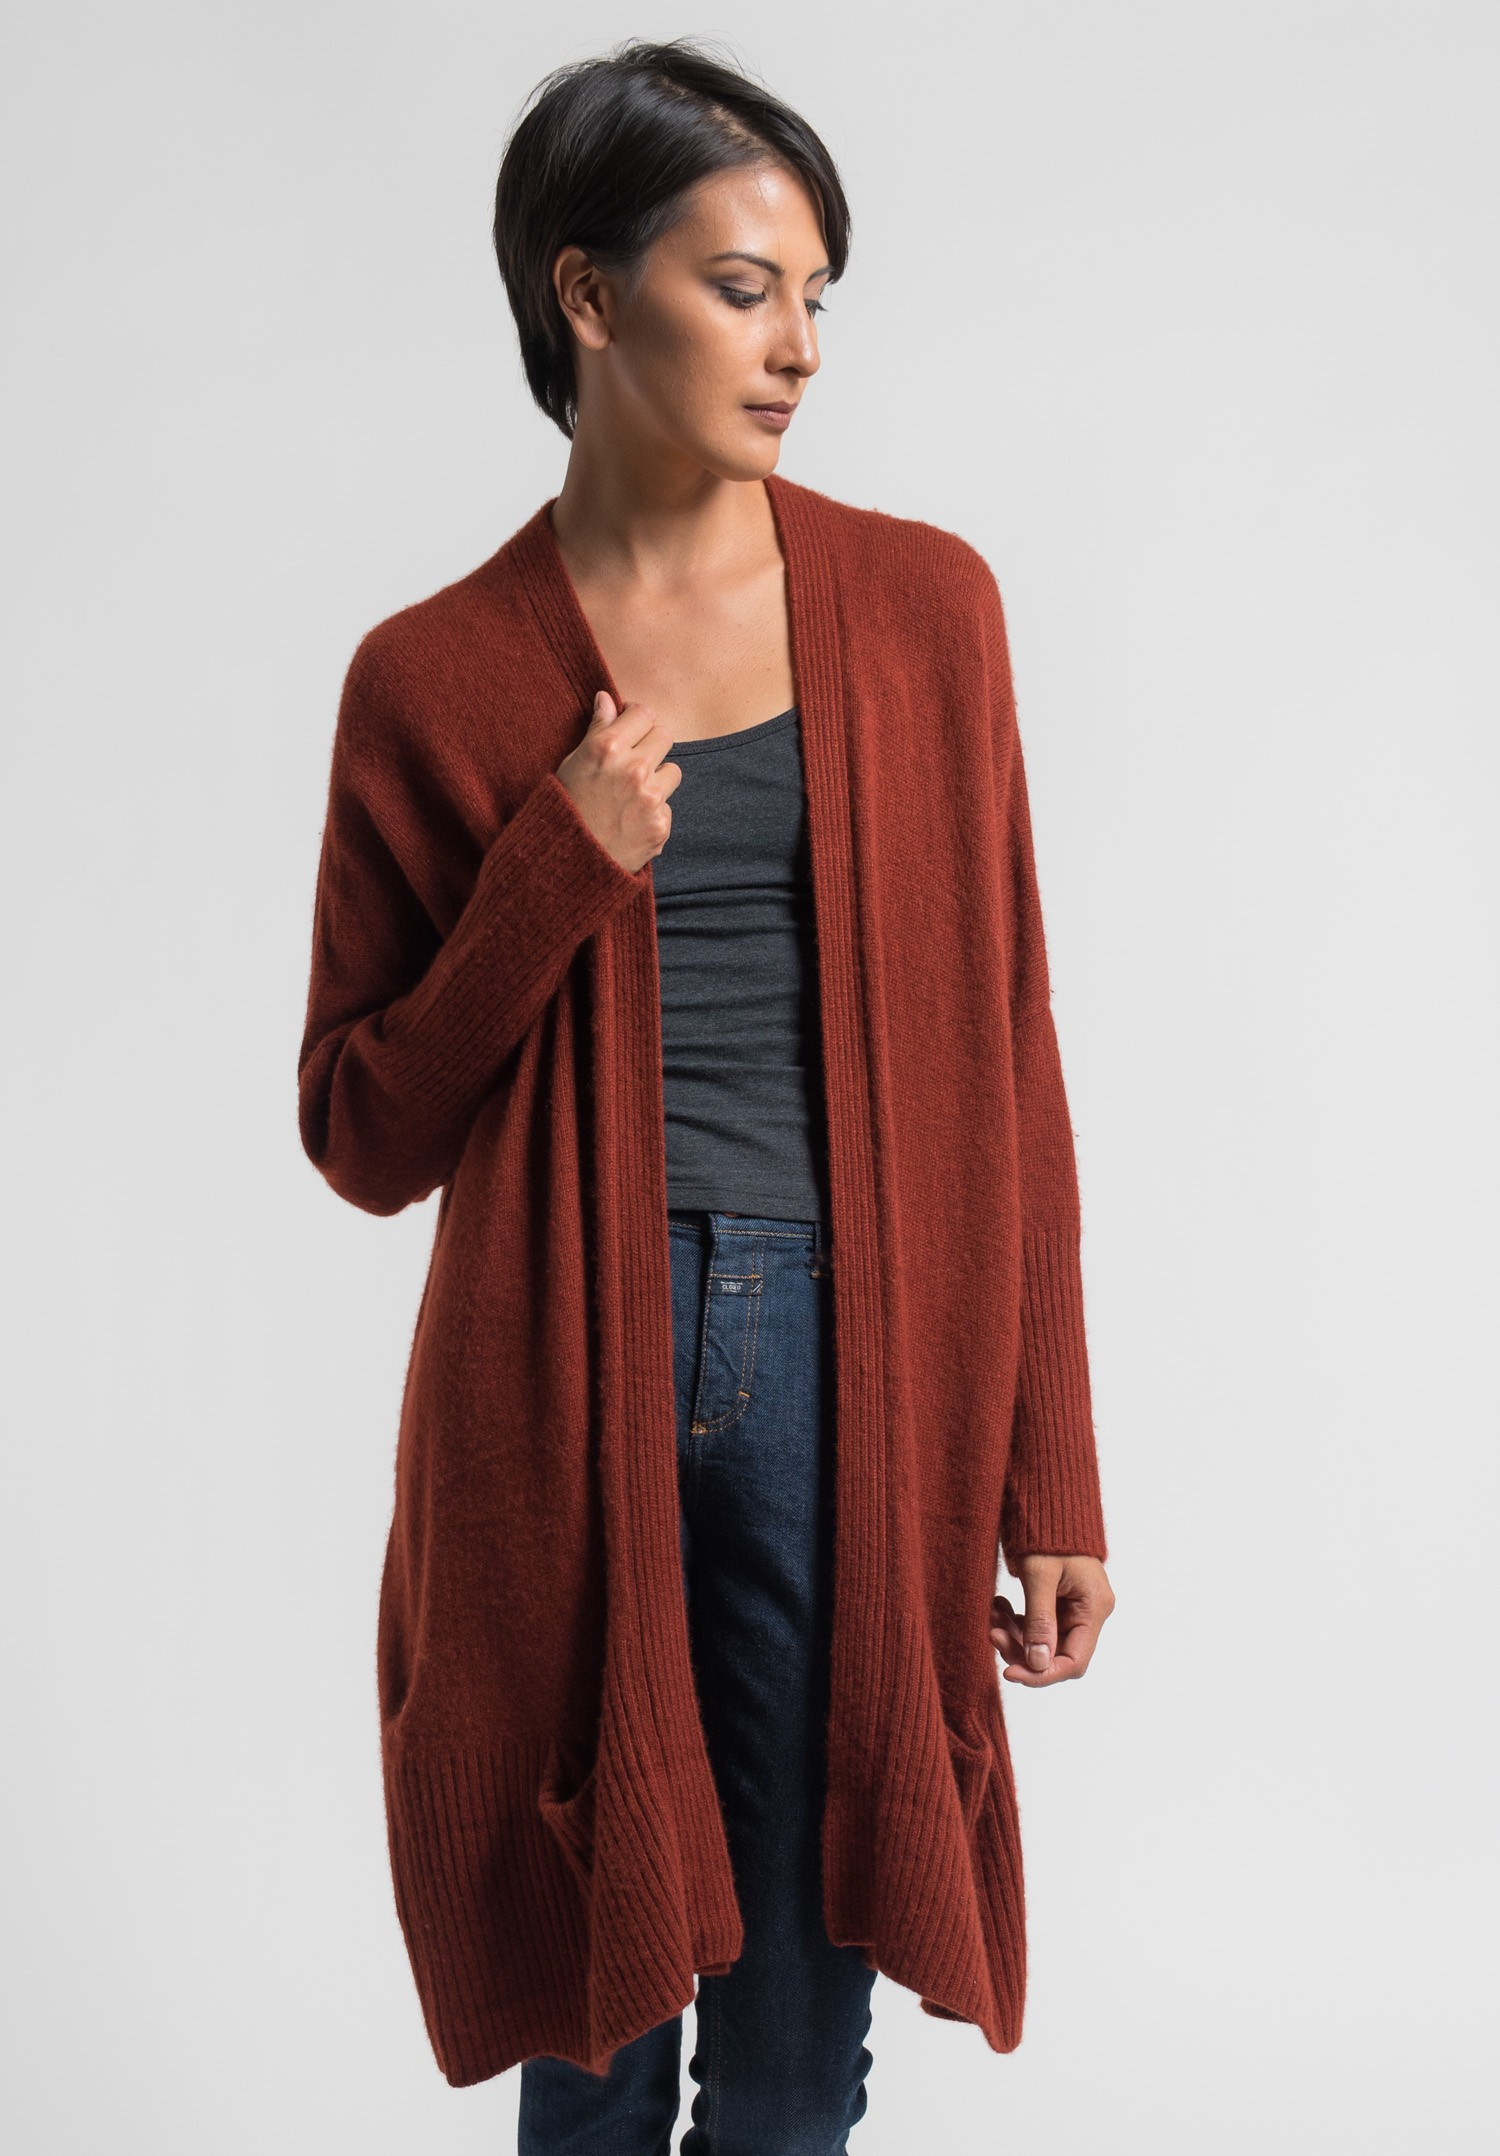 Eskandar Very Long Open Cashmere Cardigan in Africa | Santa Fe Dry ...